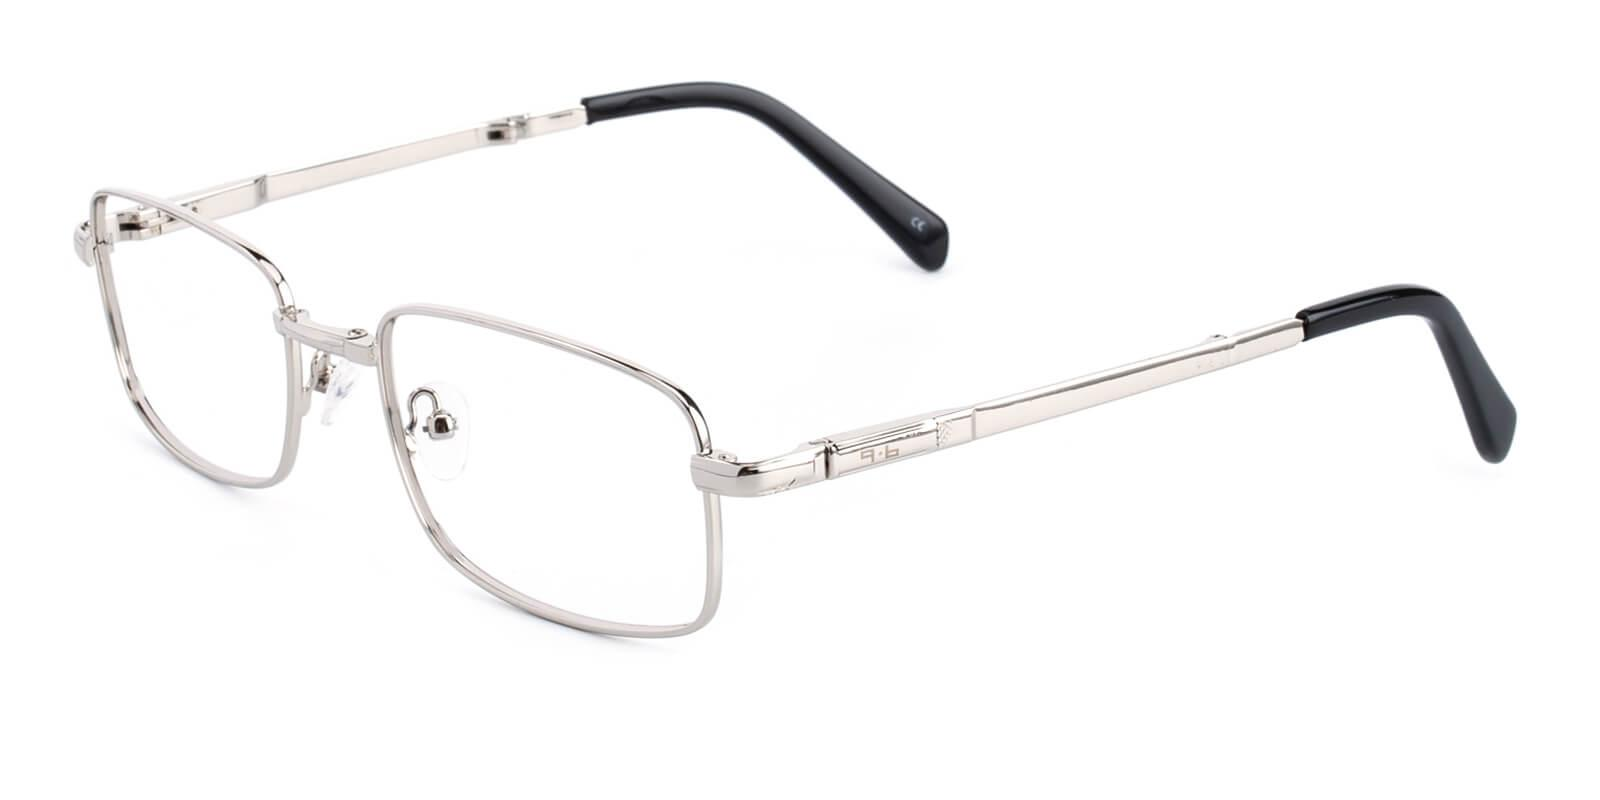 Norfolk-Silver-Rectangle-Metal-Eyeglasses-additional1